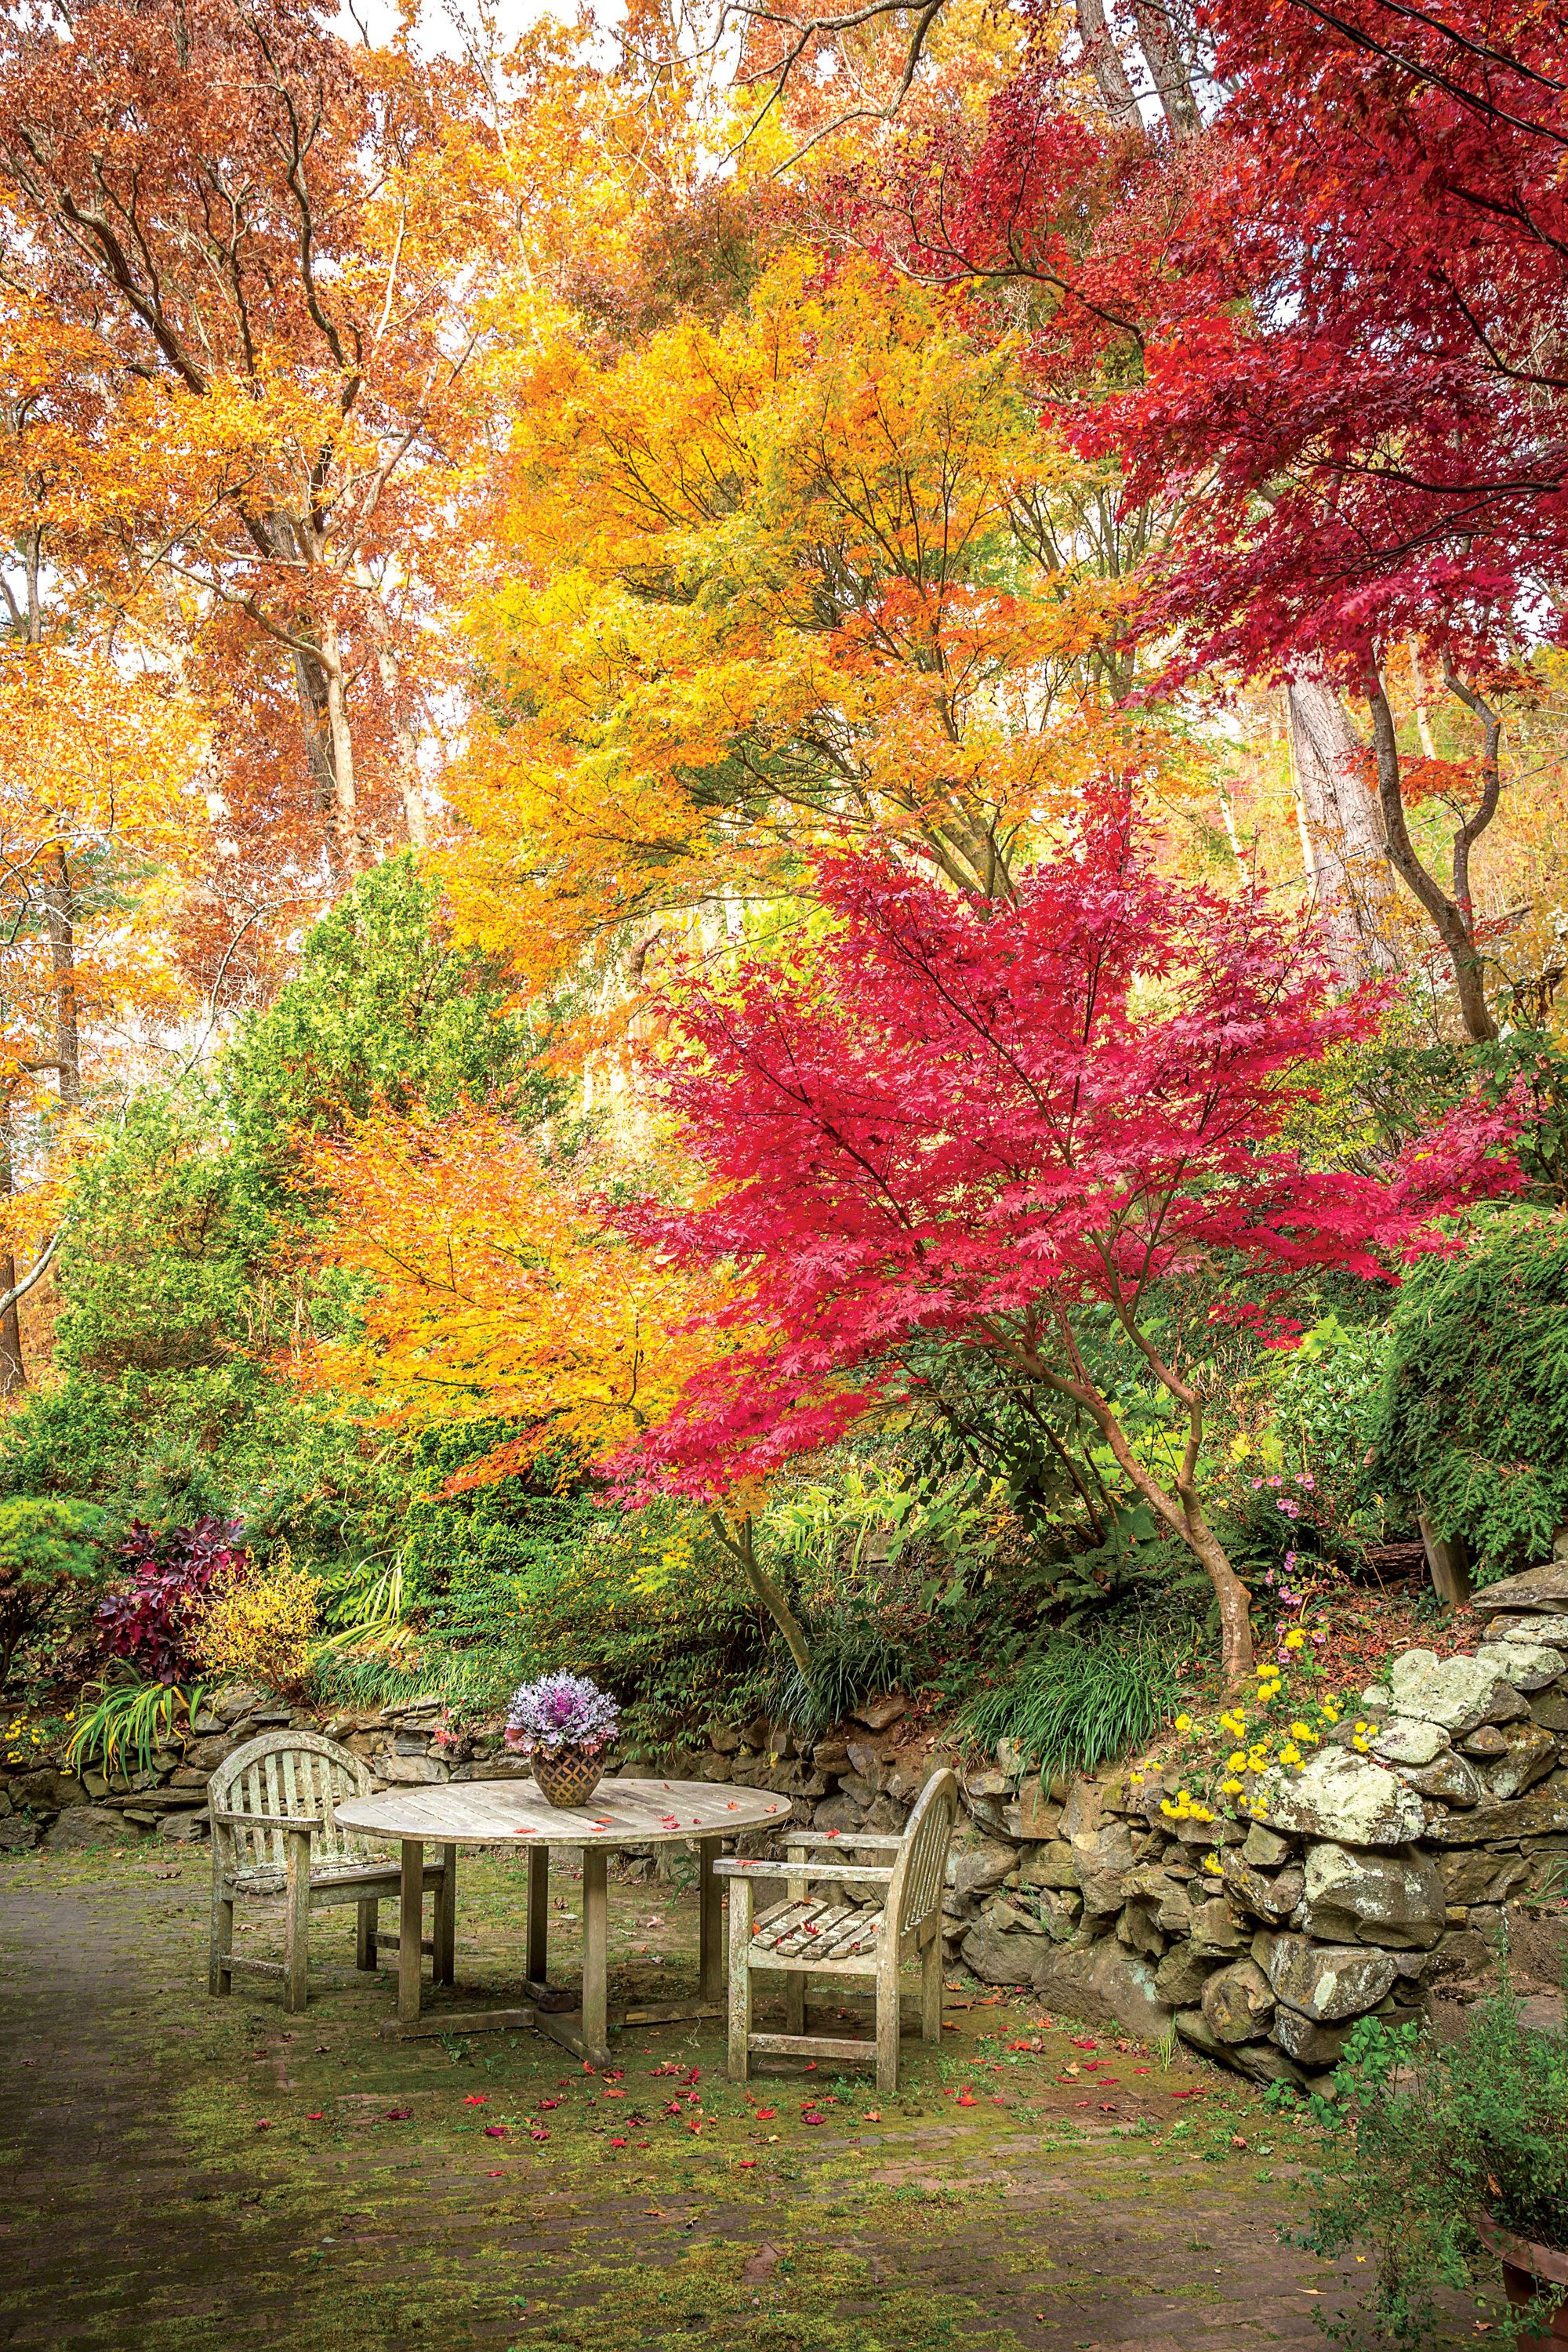 Picture-Perfect North Carolina Garden   Southern Living   Glorious leaves, flowers, and berries make this Asheville, North Carolina, garden picture-perfect.